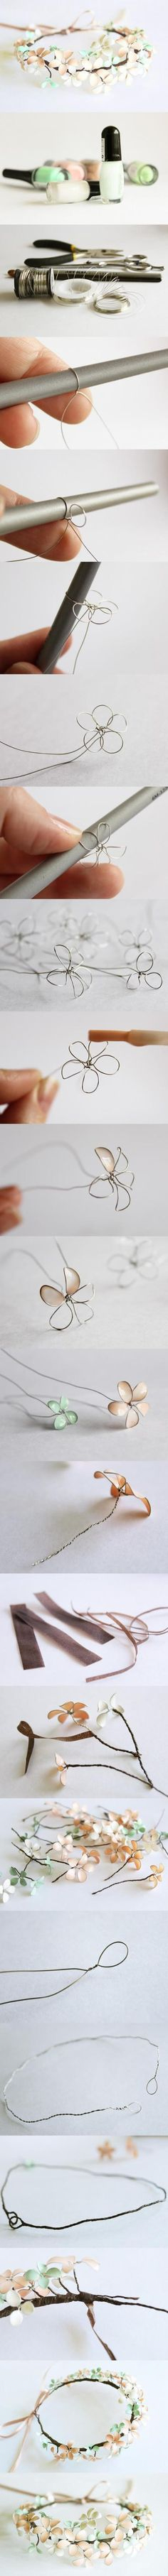 Make Flowers with wire and nail polish